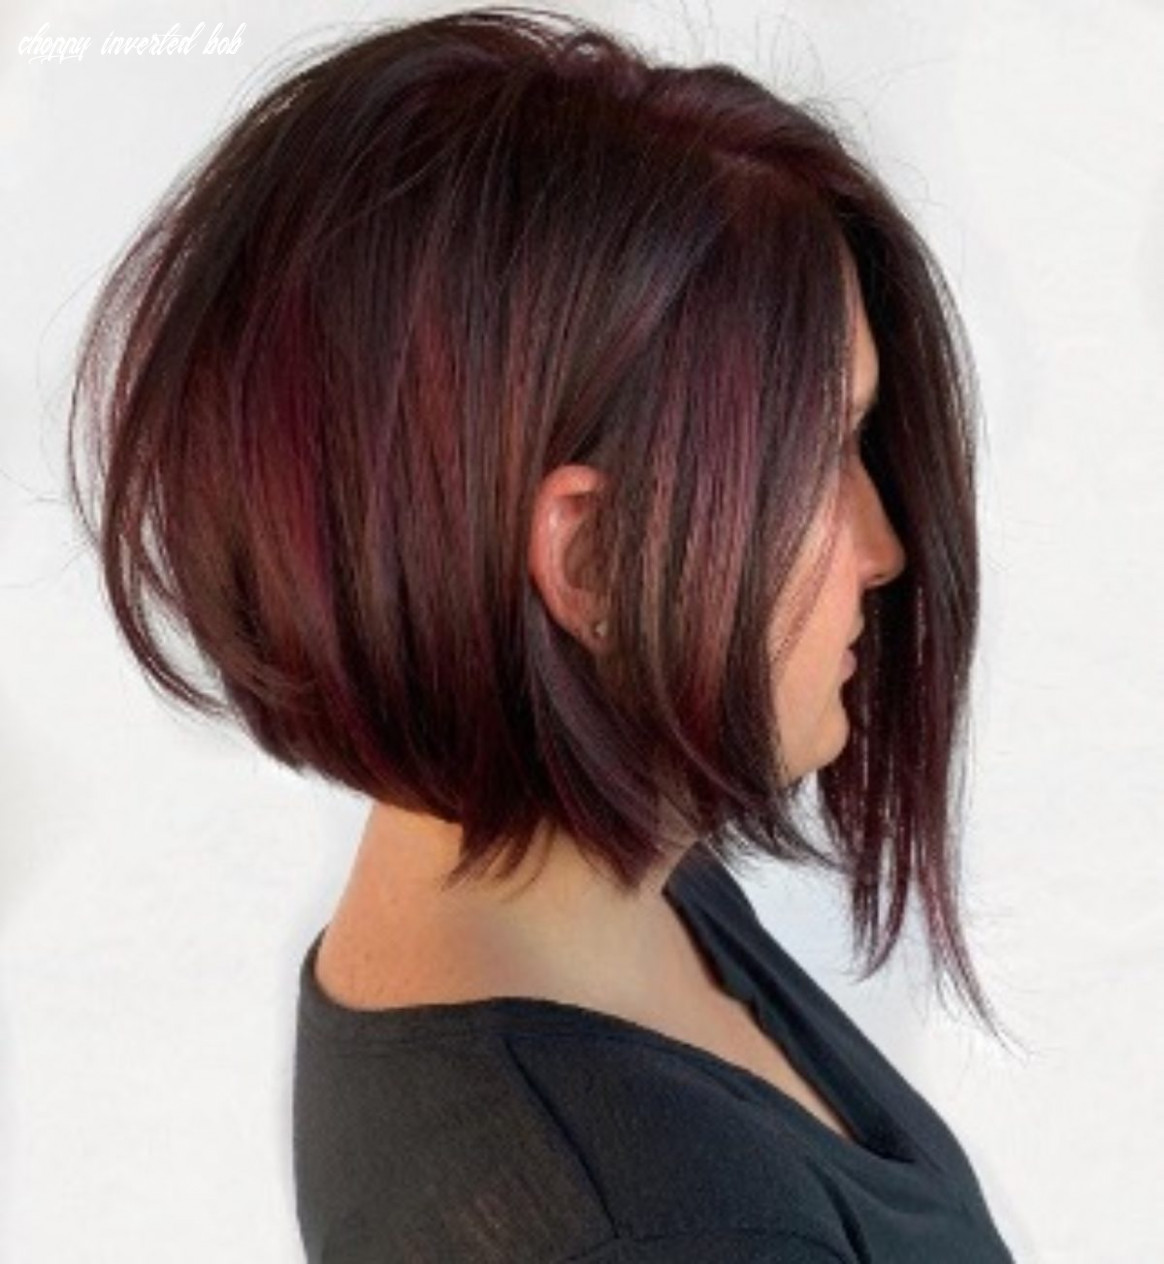 Inspiring versatility and classy feel of a stylish inverted bob